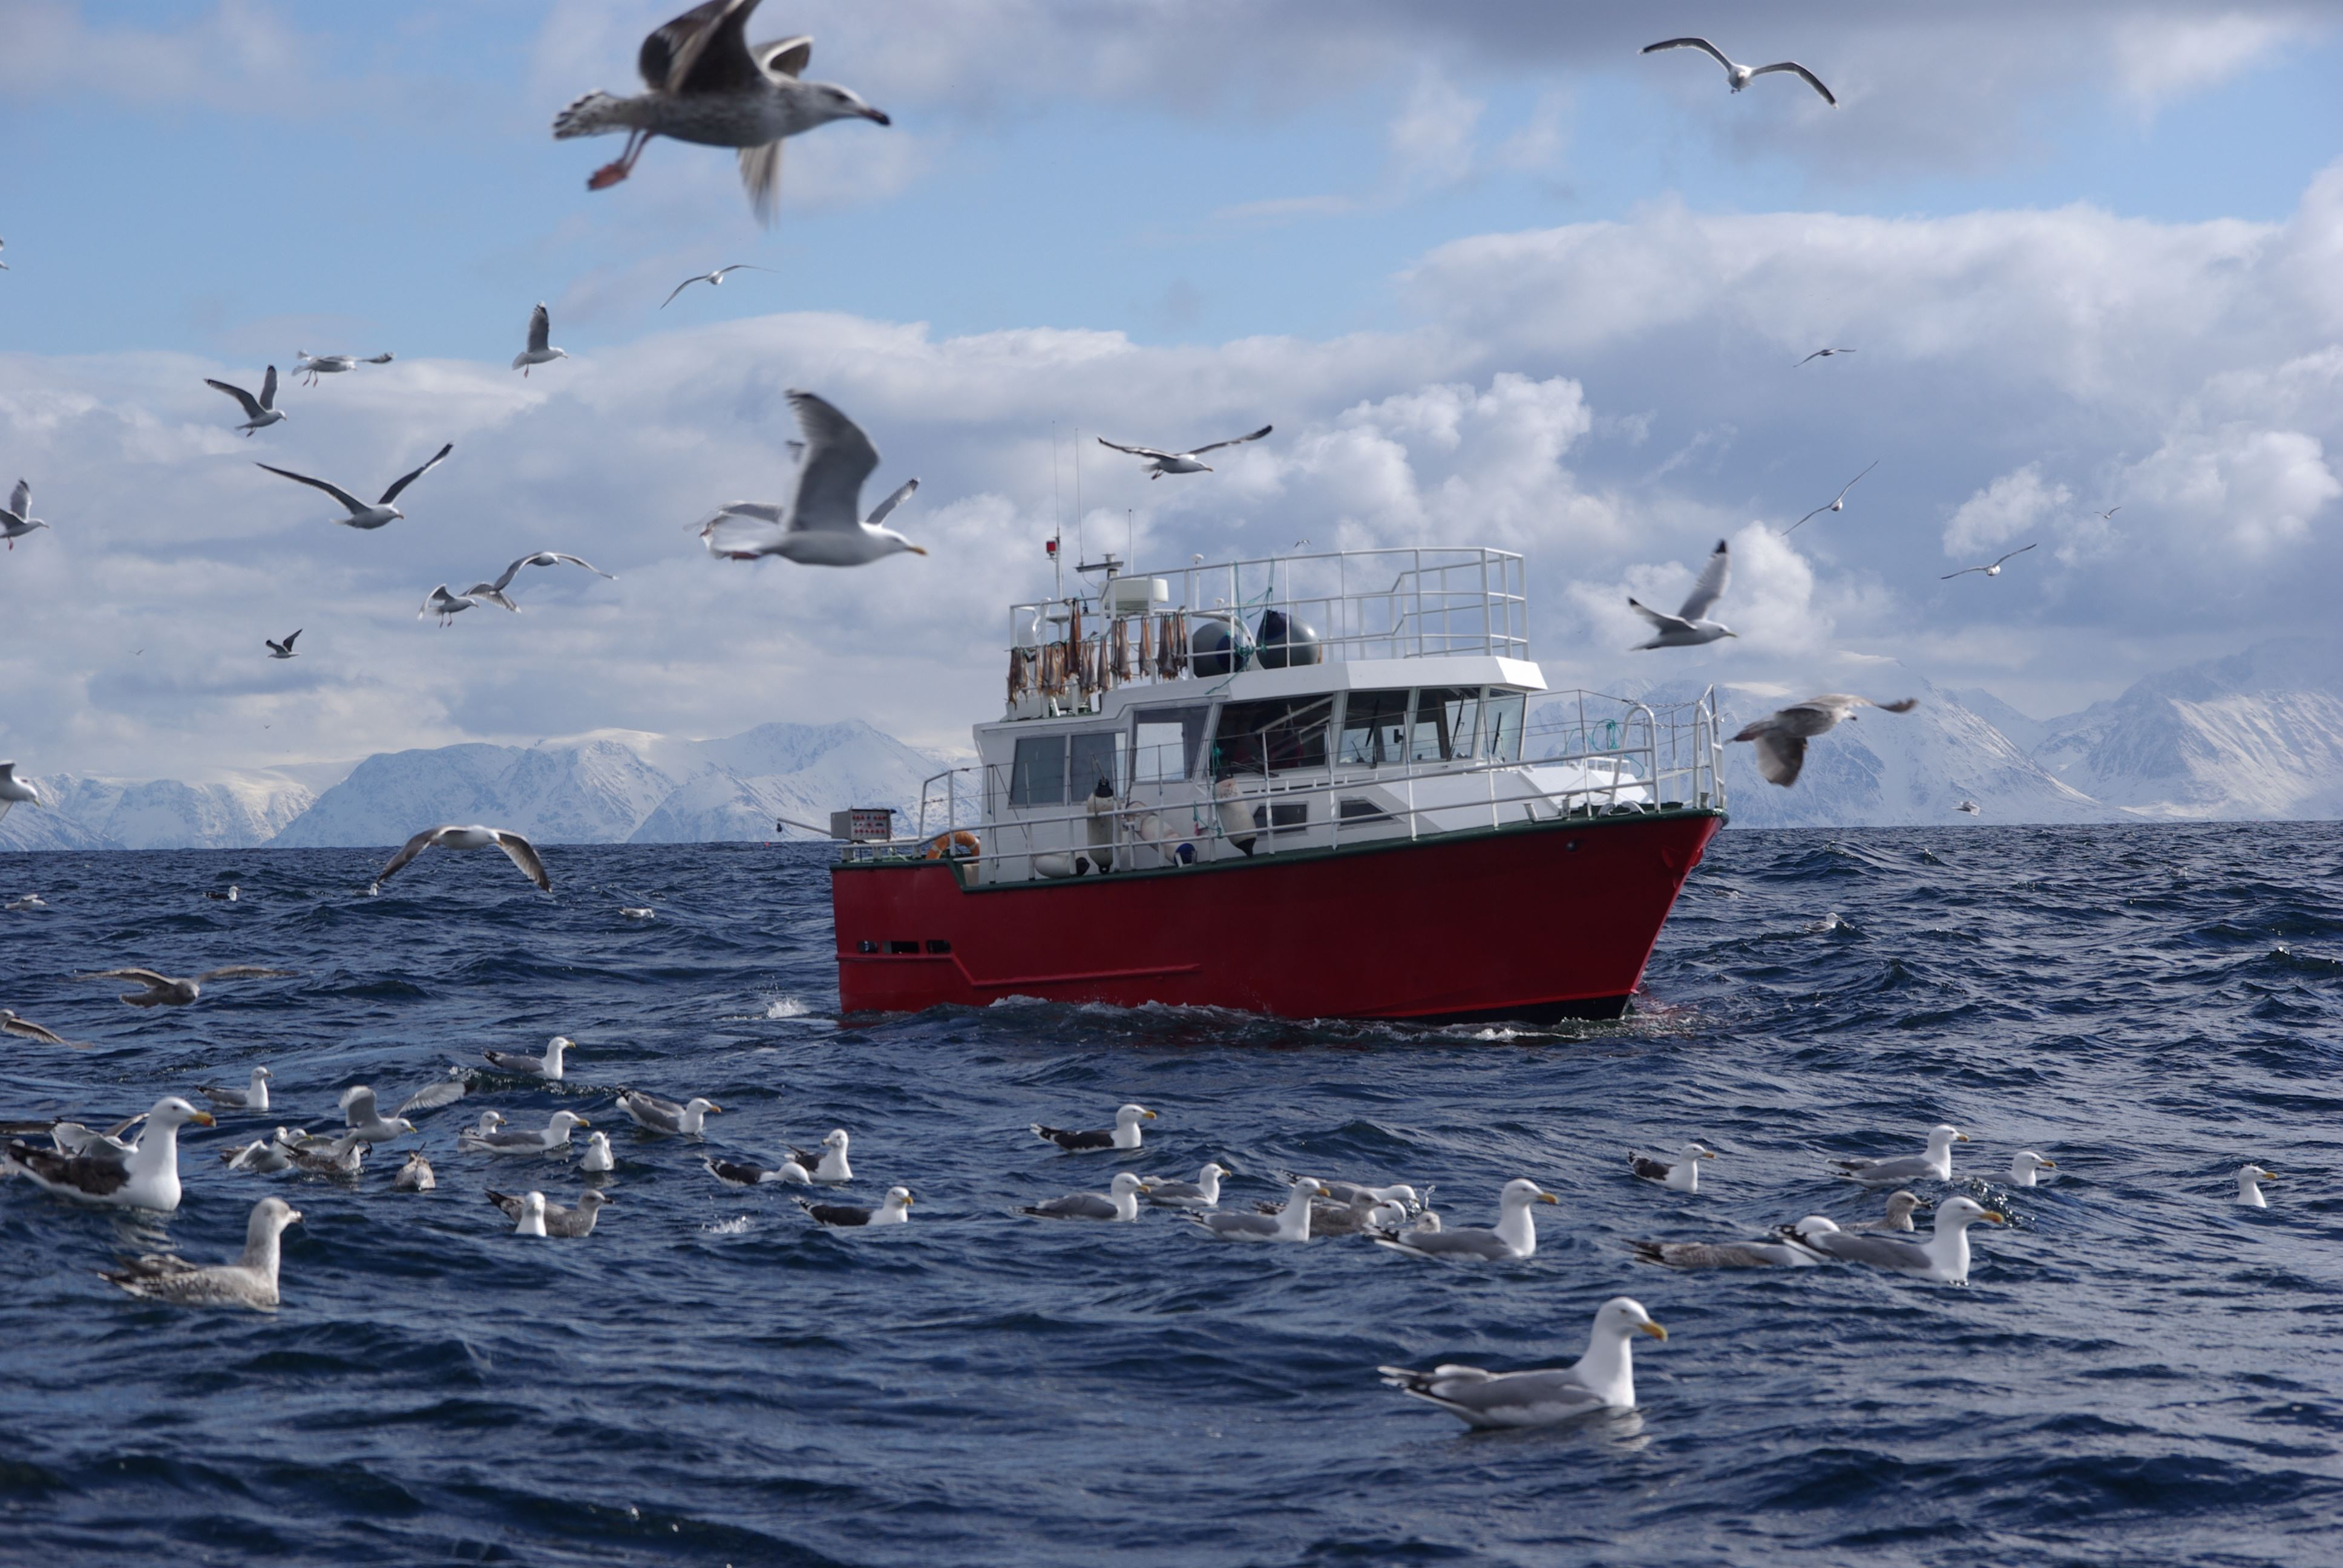 Exciting fjordcruise and fishing trip with MS Senjafjell - Solbø Maritime AS